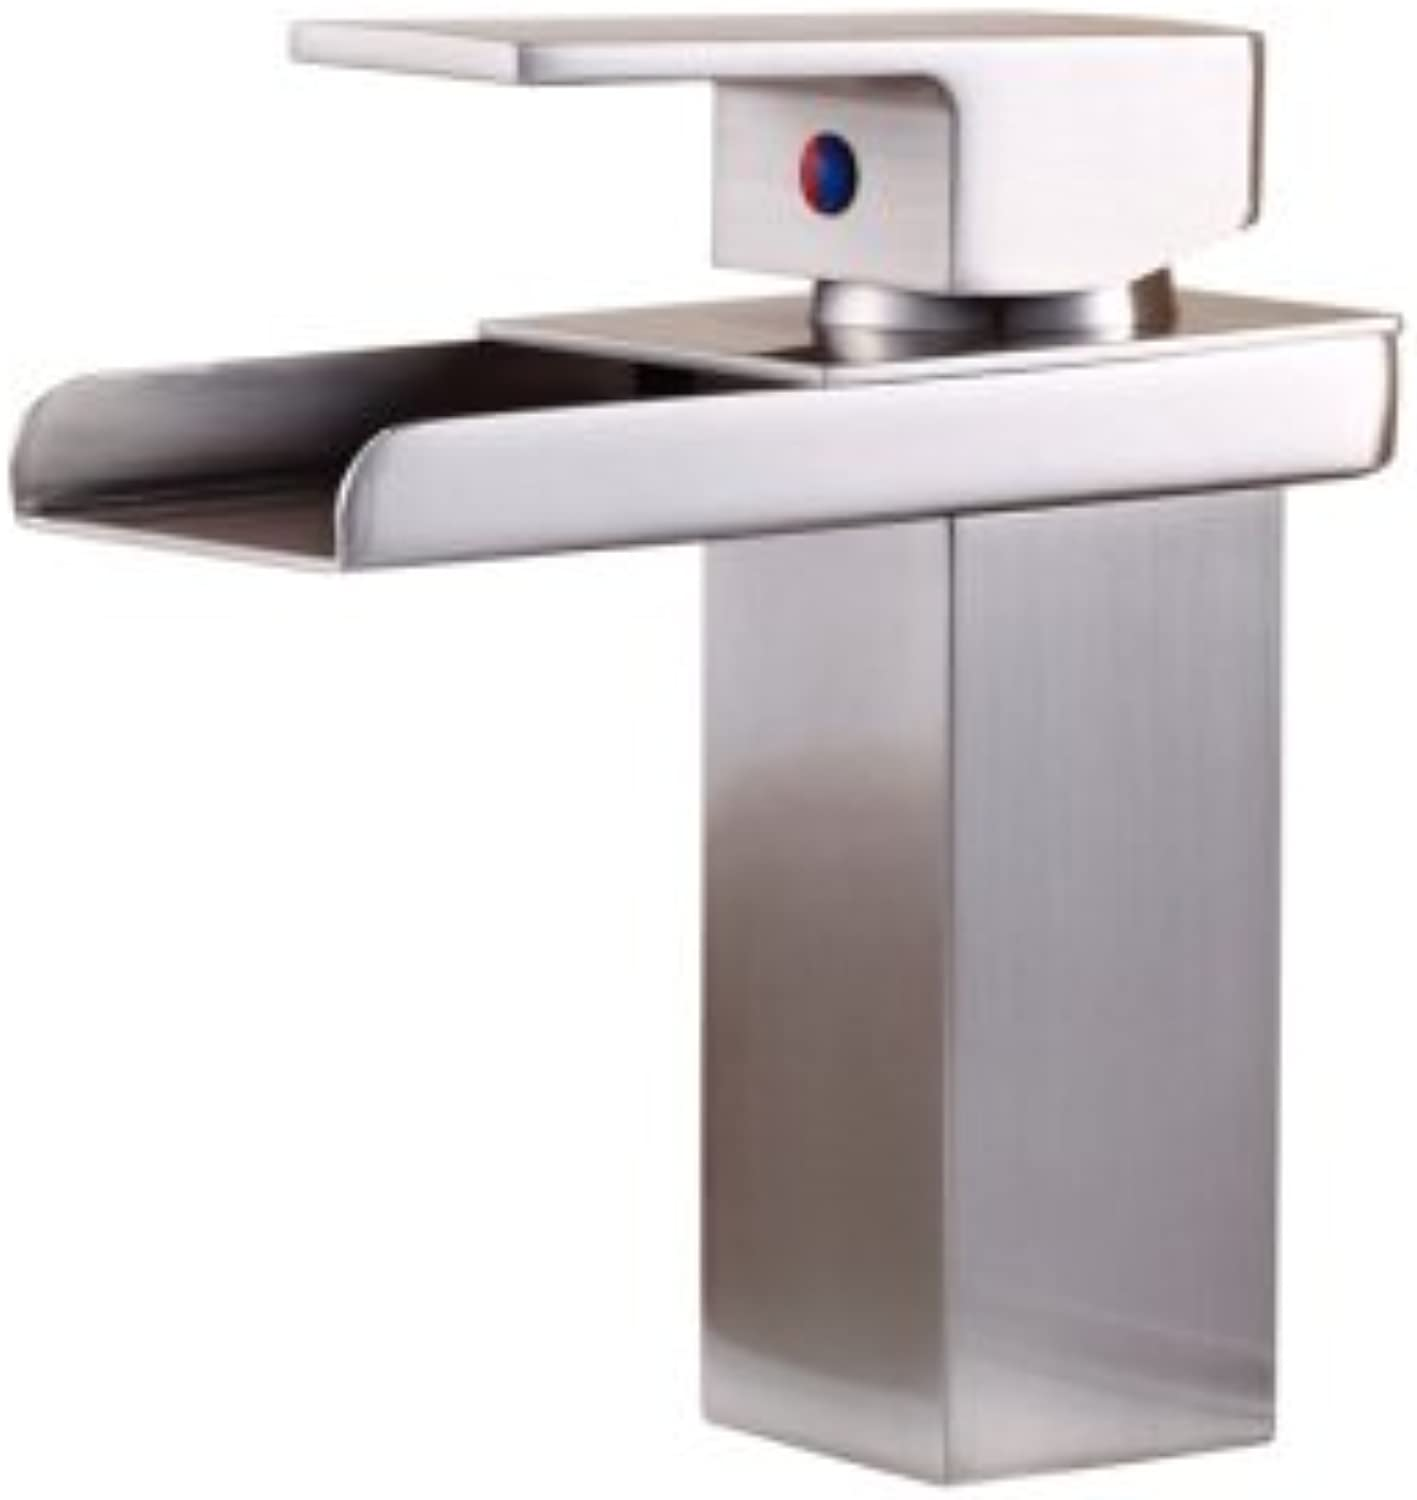 LHbox Basin Mixer Tap Bathroom Sink Faucet Basin taps and cold water continental all-copper,